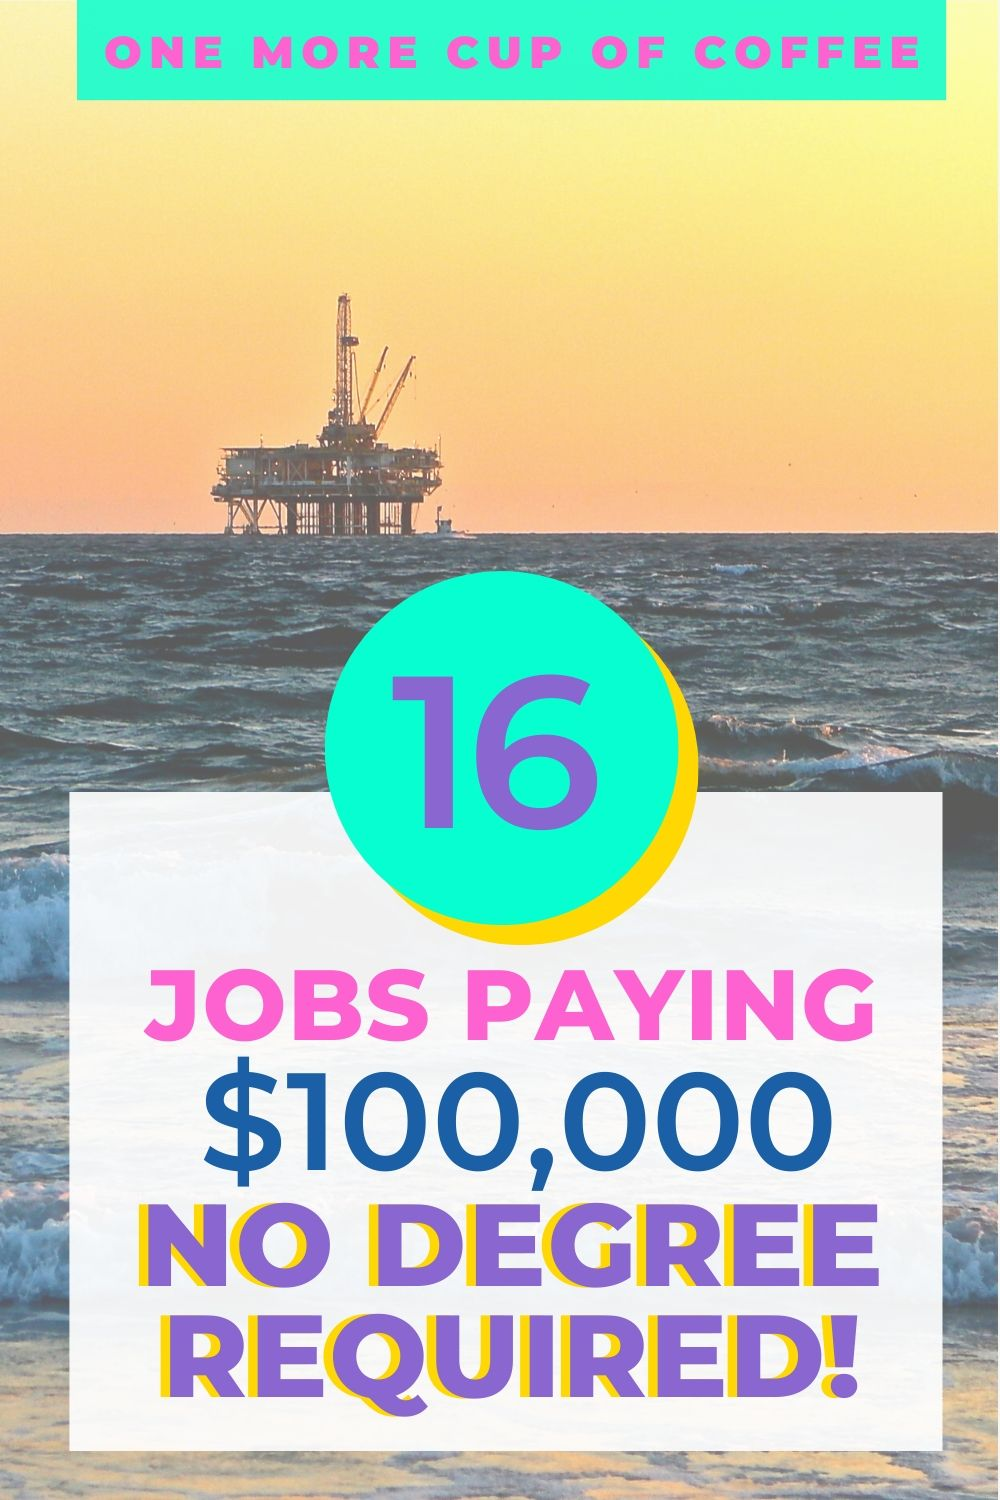 Sunset with oil rig on the horizon to represent jobs that pay #100K and do not require a degree.